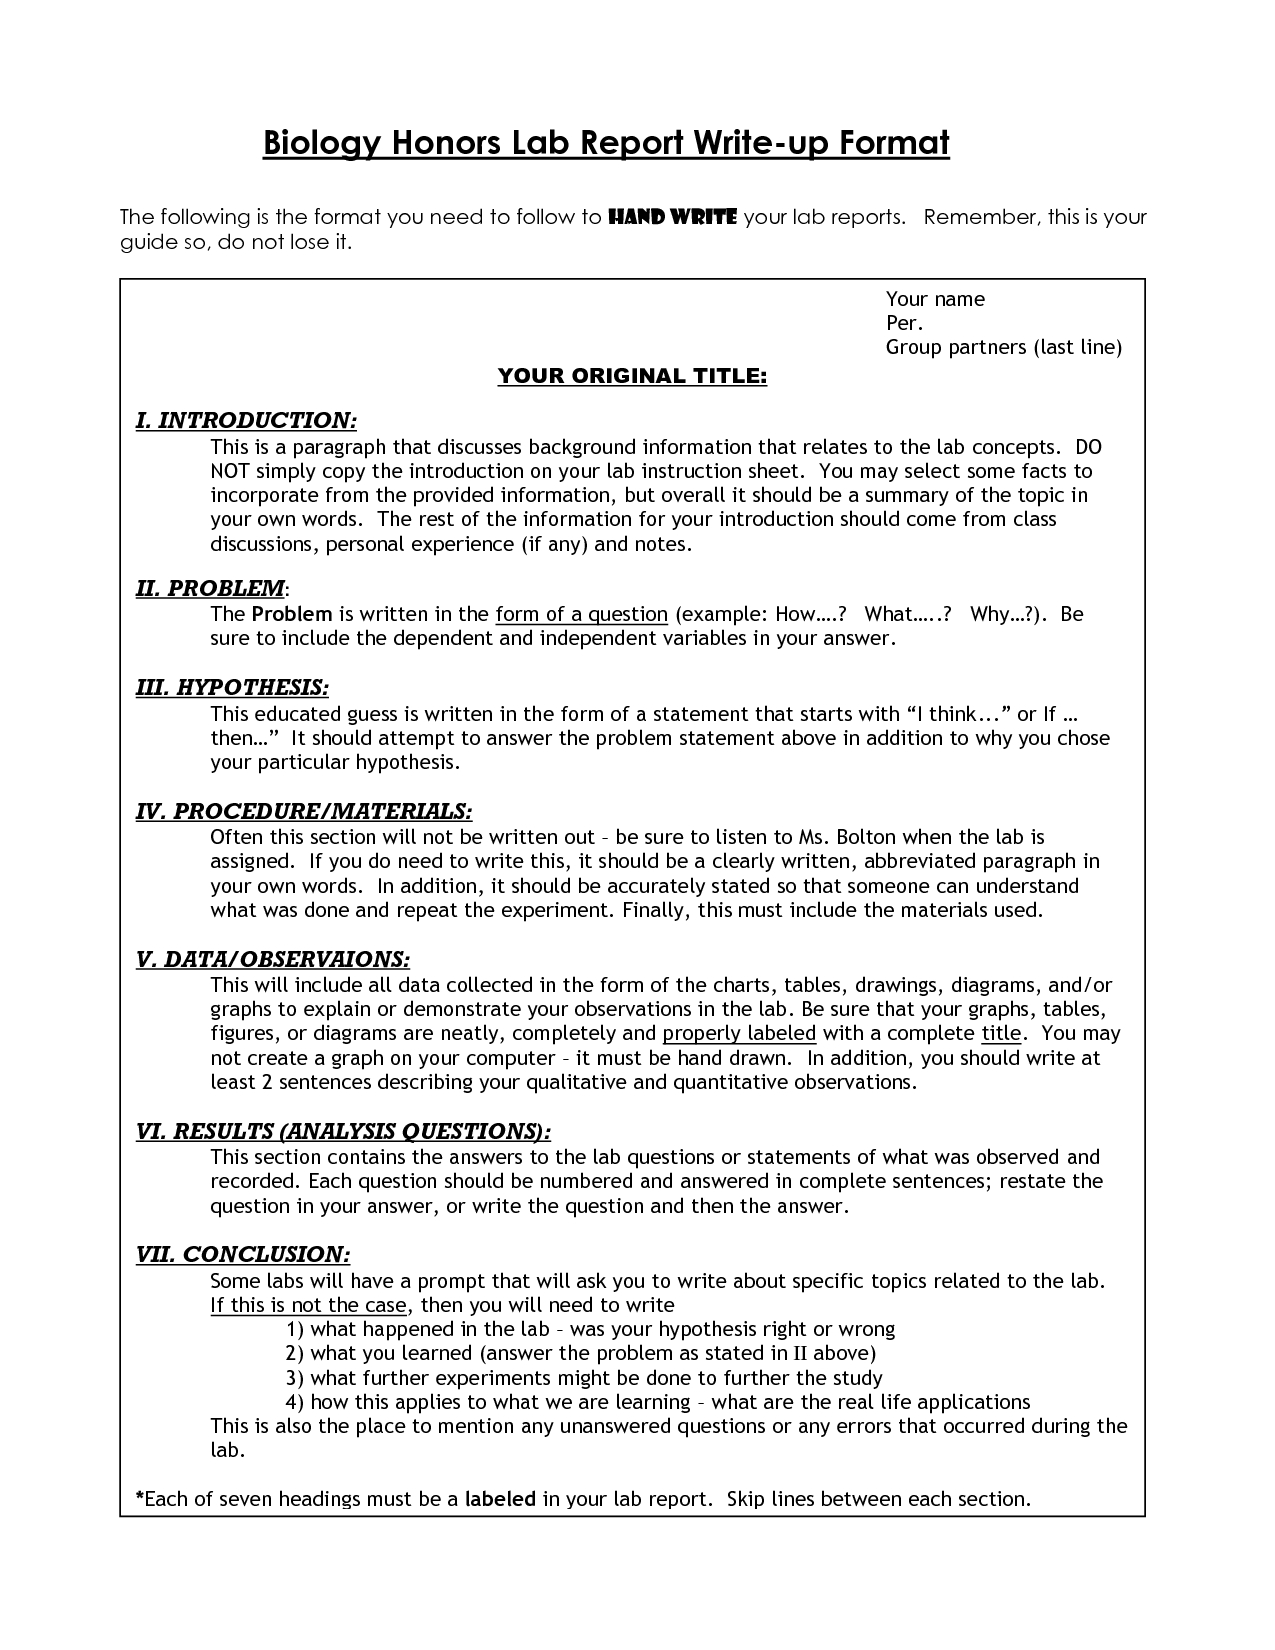 Biology Lab Report Format Example   College   Lab Report Within Lab Report Conclusion Template